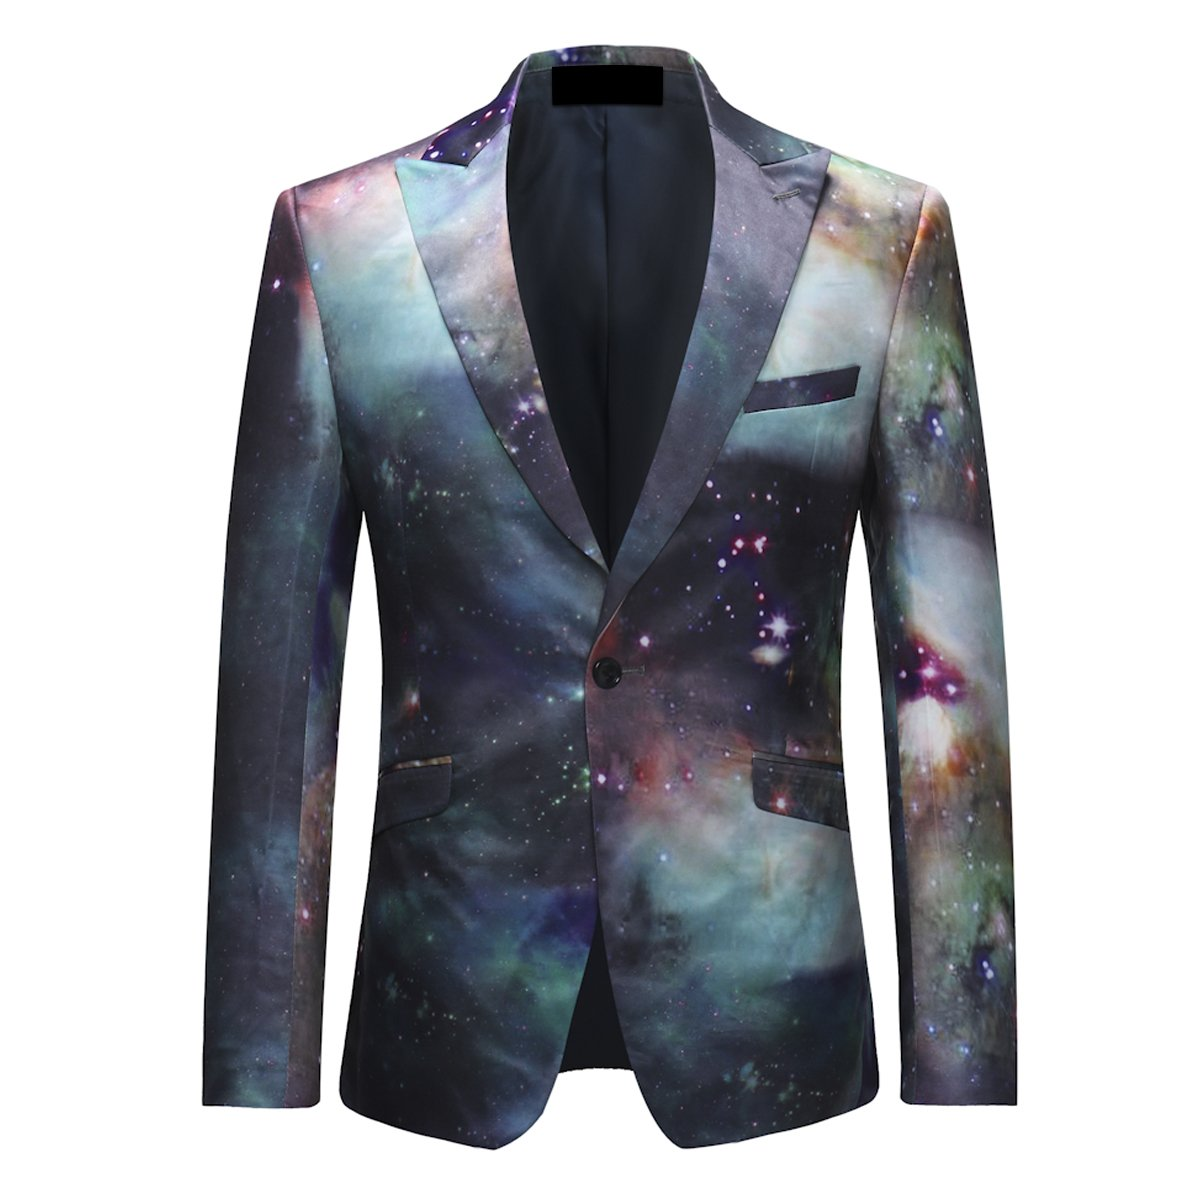 YFFUSHI Mens Floral Printed Sport Coat Slim Fit One Button Jacket Blazer for Party/Banquet/Nightclub